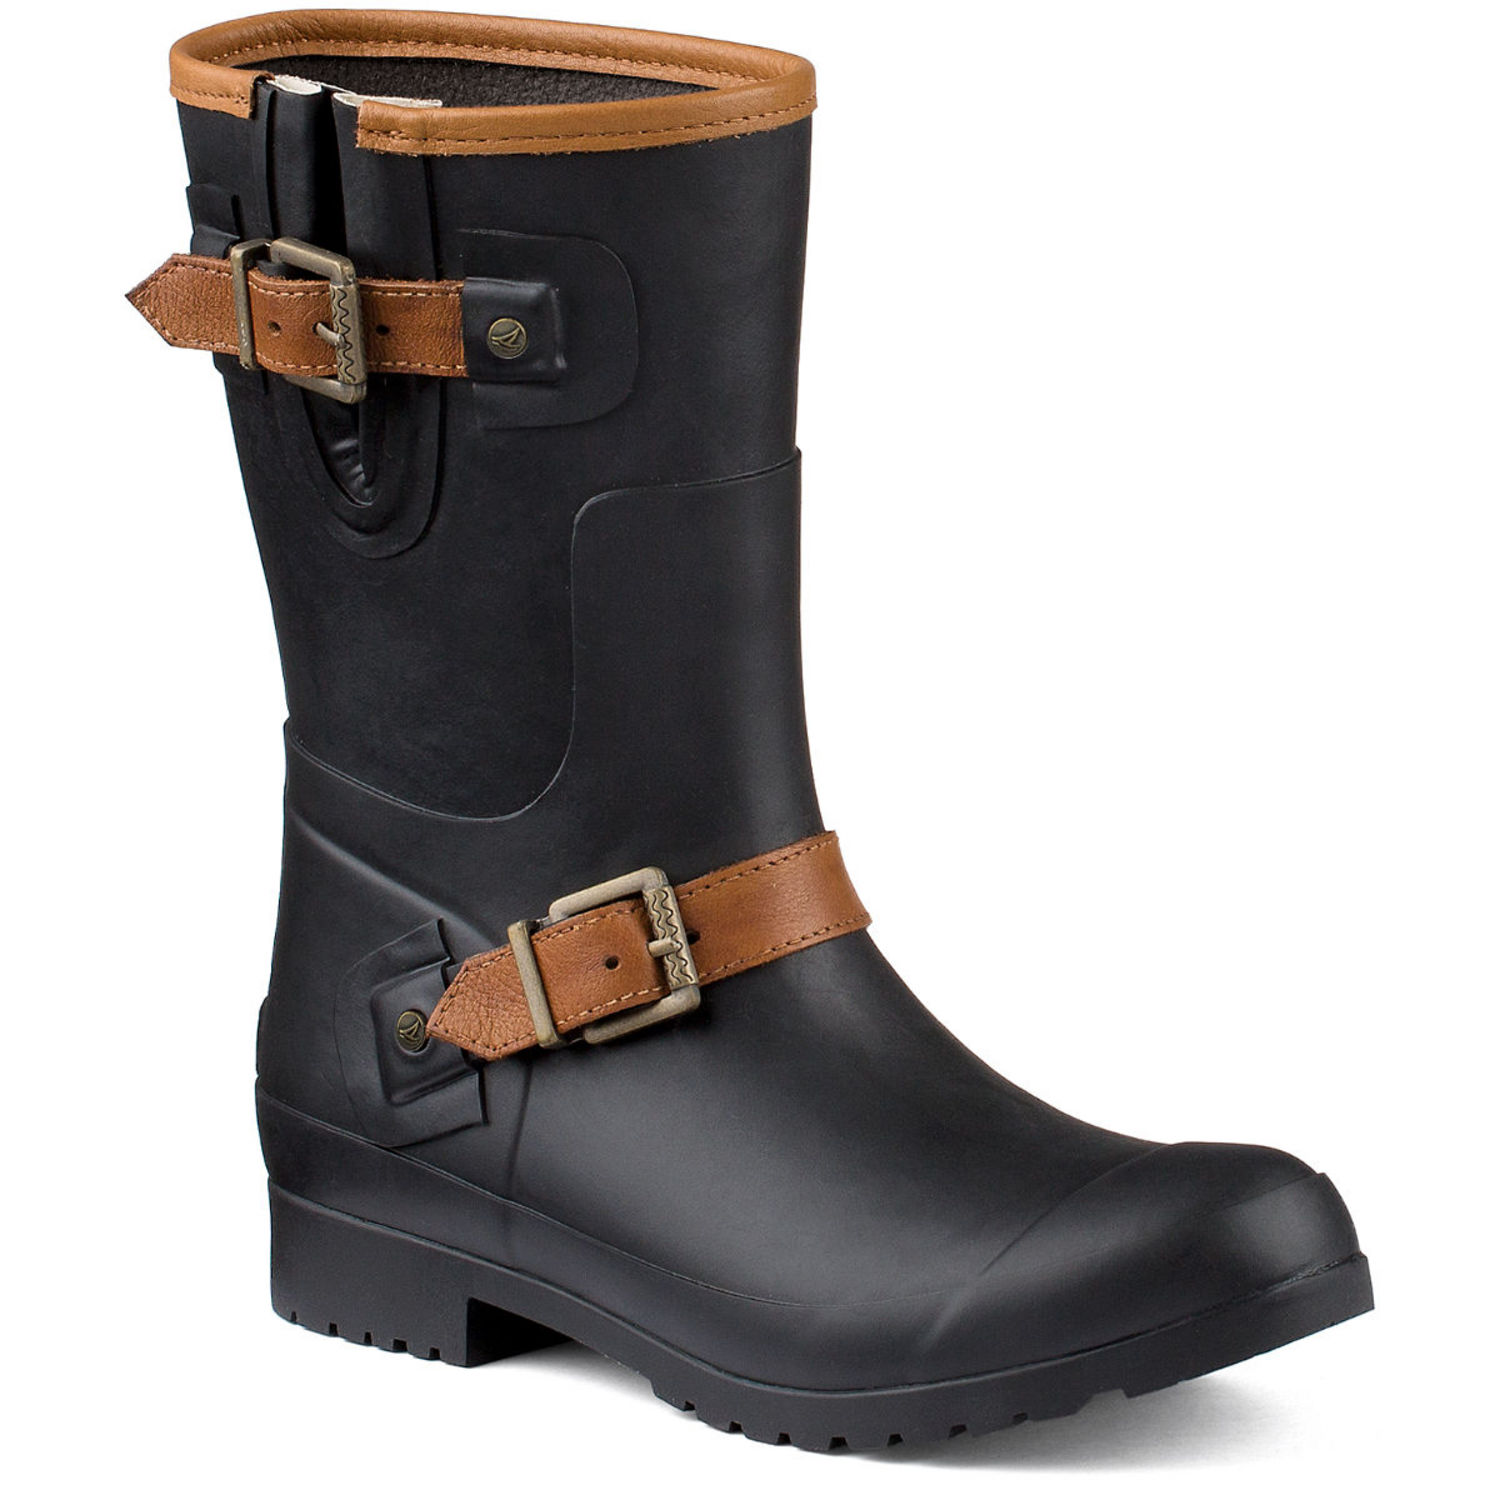 Sperry Top Sider Women's Walker Fog Rain Boots